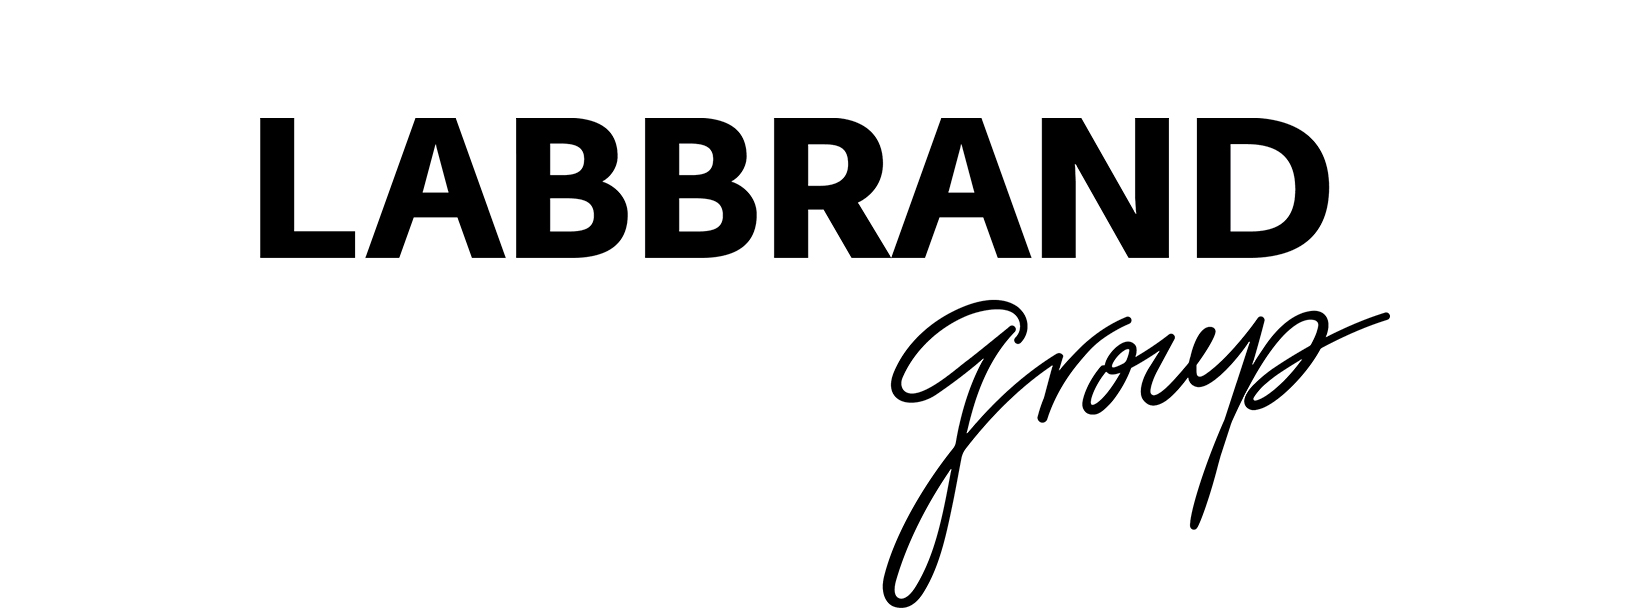 LABBRAND GROUP LOGO